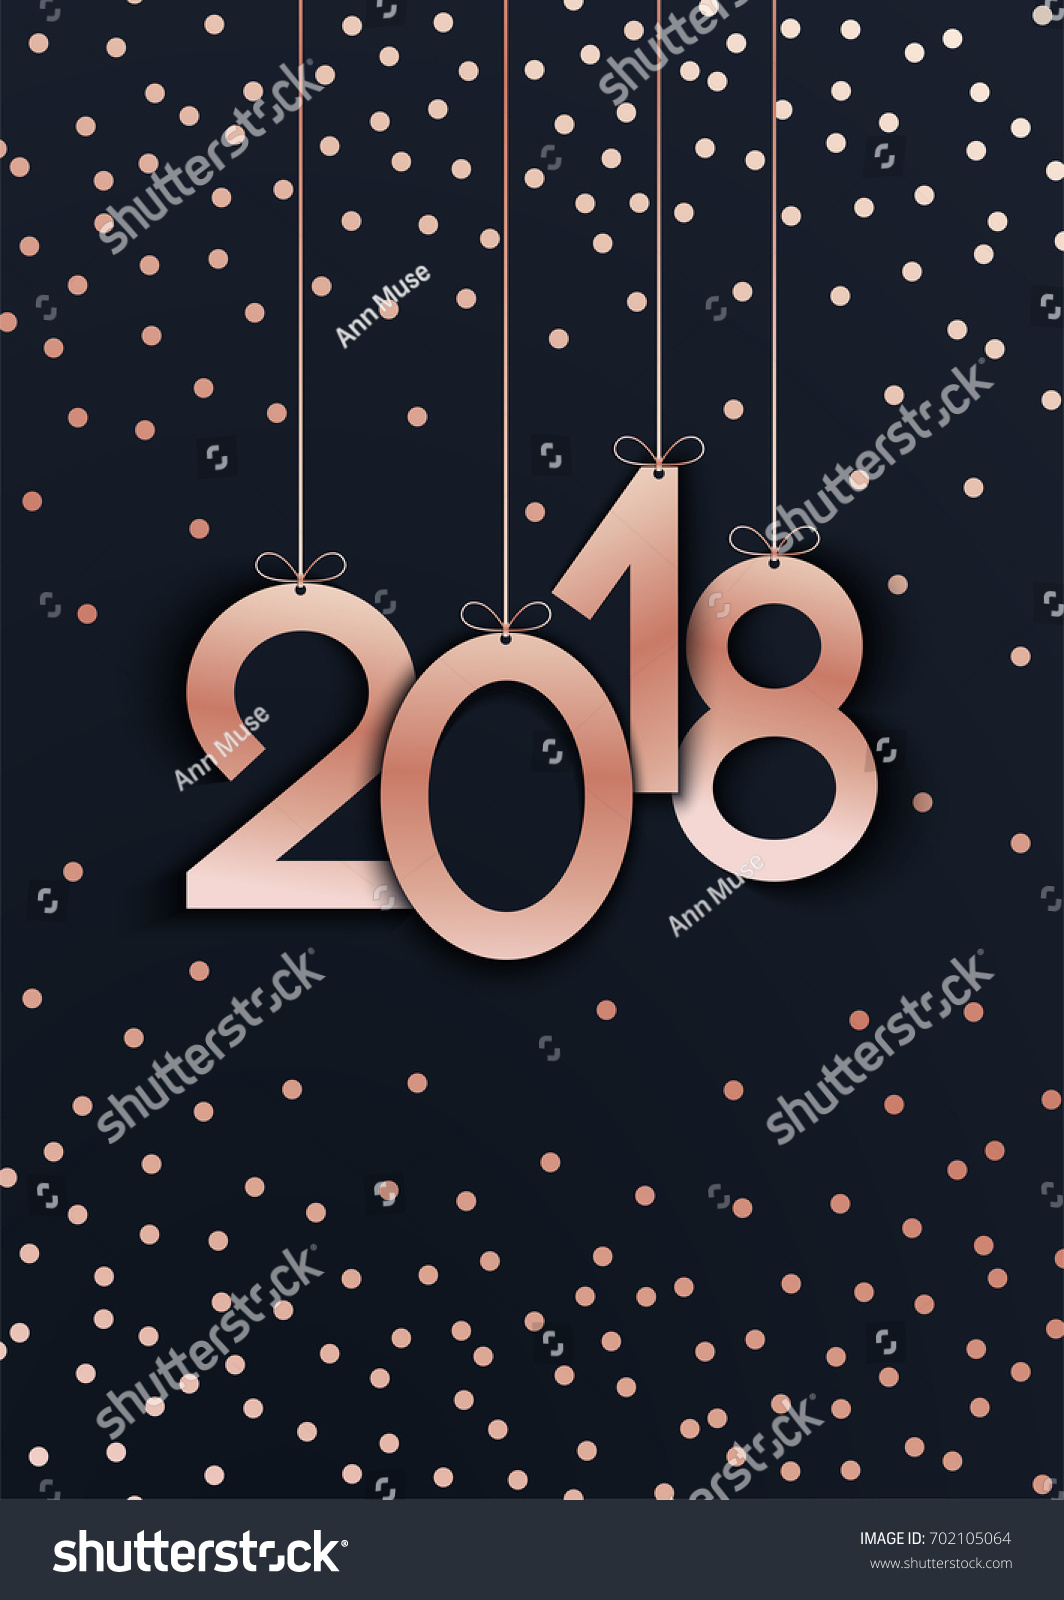 2018 happy new year rose gold number vector template background